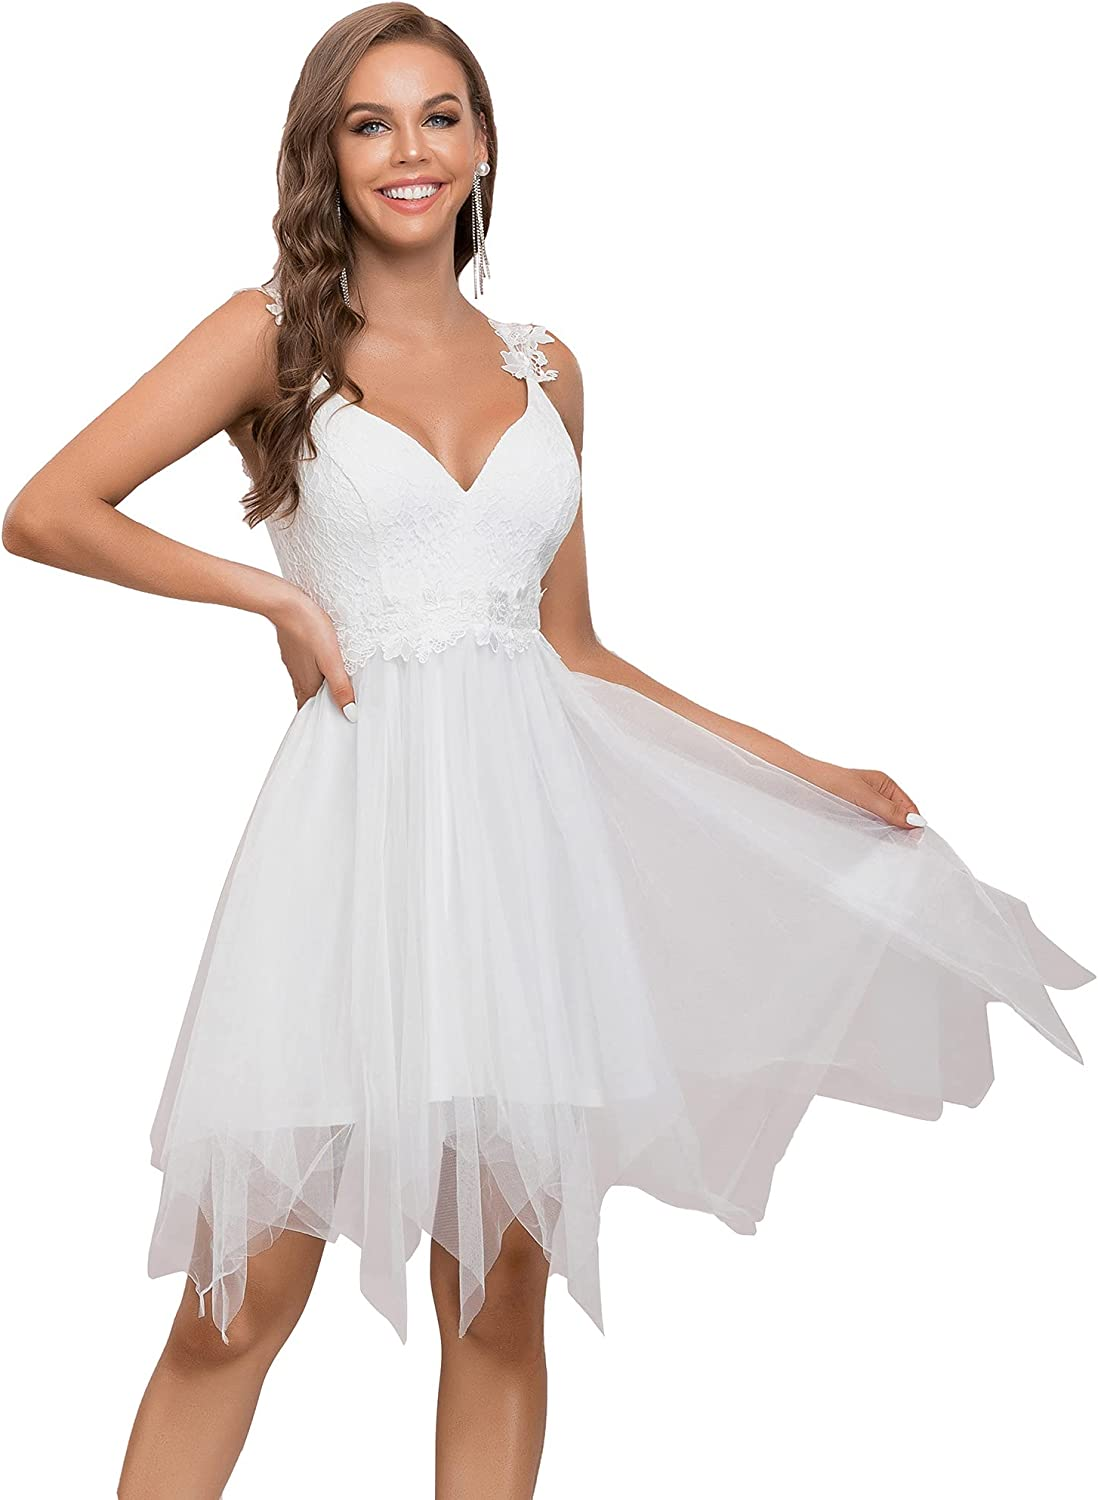 Ever-Pretty Women's Sleeveless Deep V Neck A Line Lace Irregular Tulle Embroidery Formal Party Dress 30233